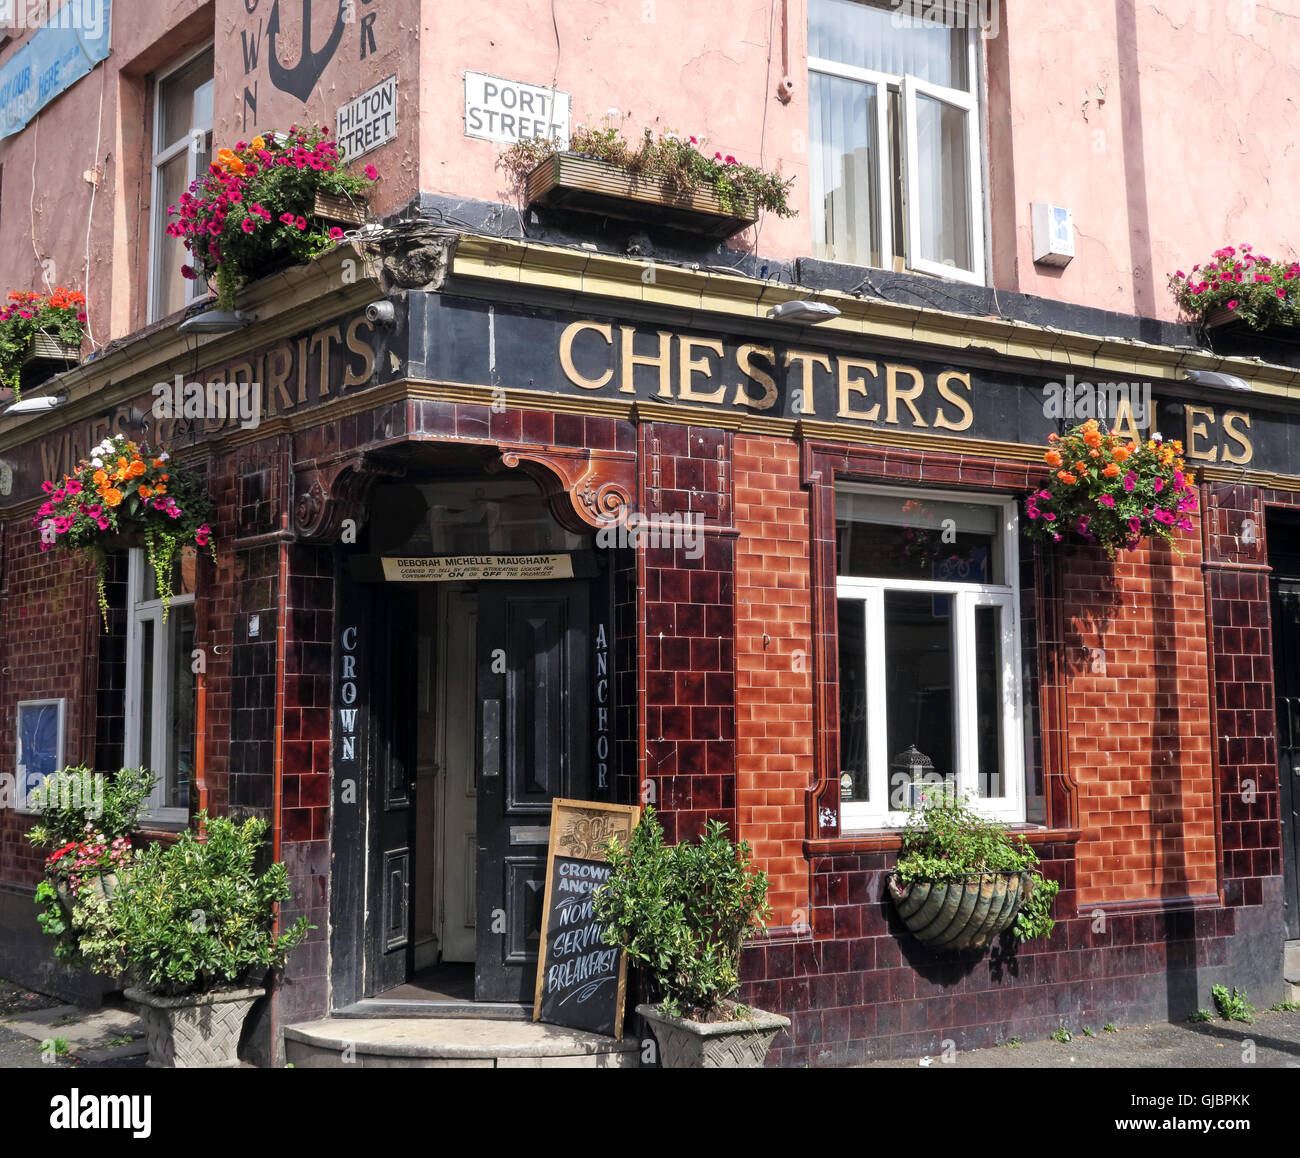 The Crown & Anchor, Port St, Northern Quarter, Manchester, old Chesters Ales sign - Stock Image